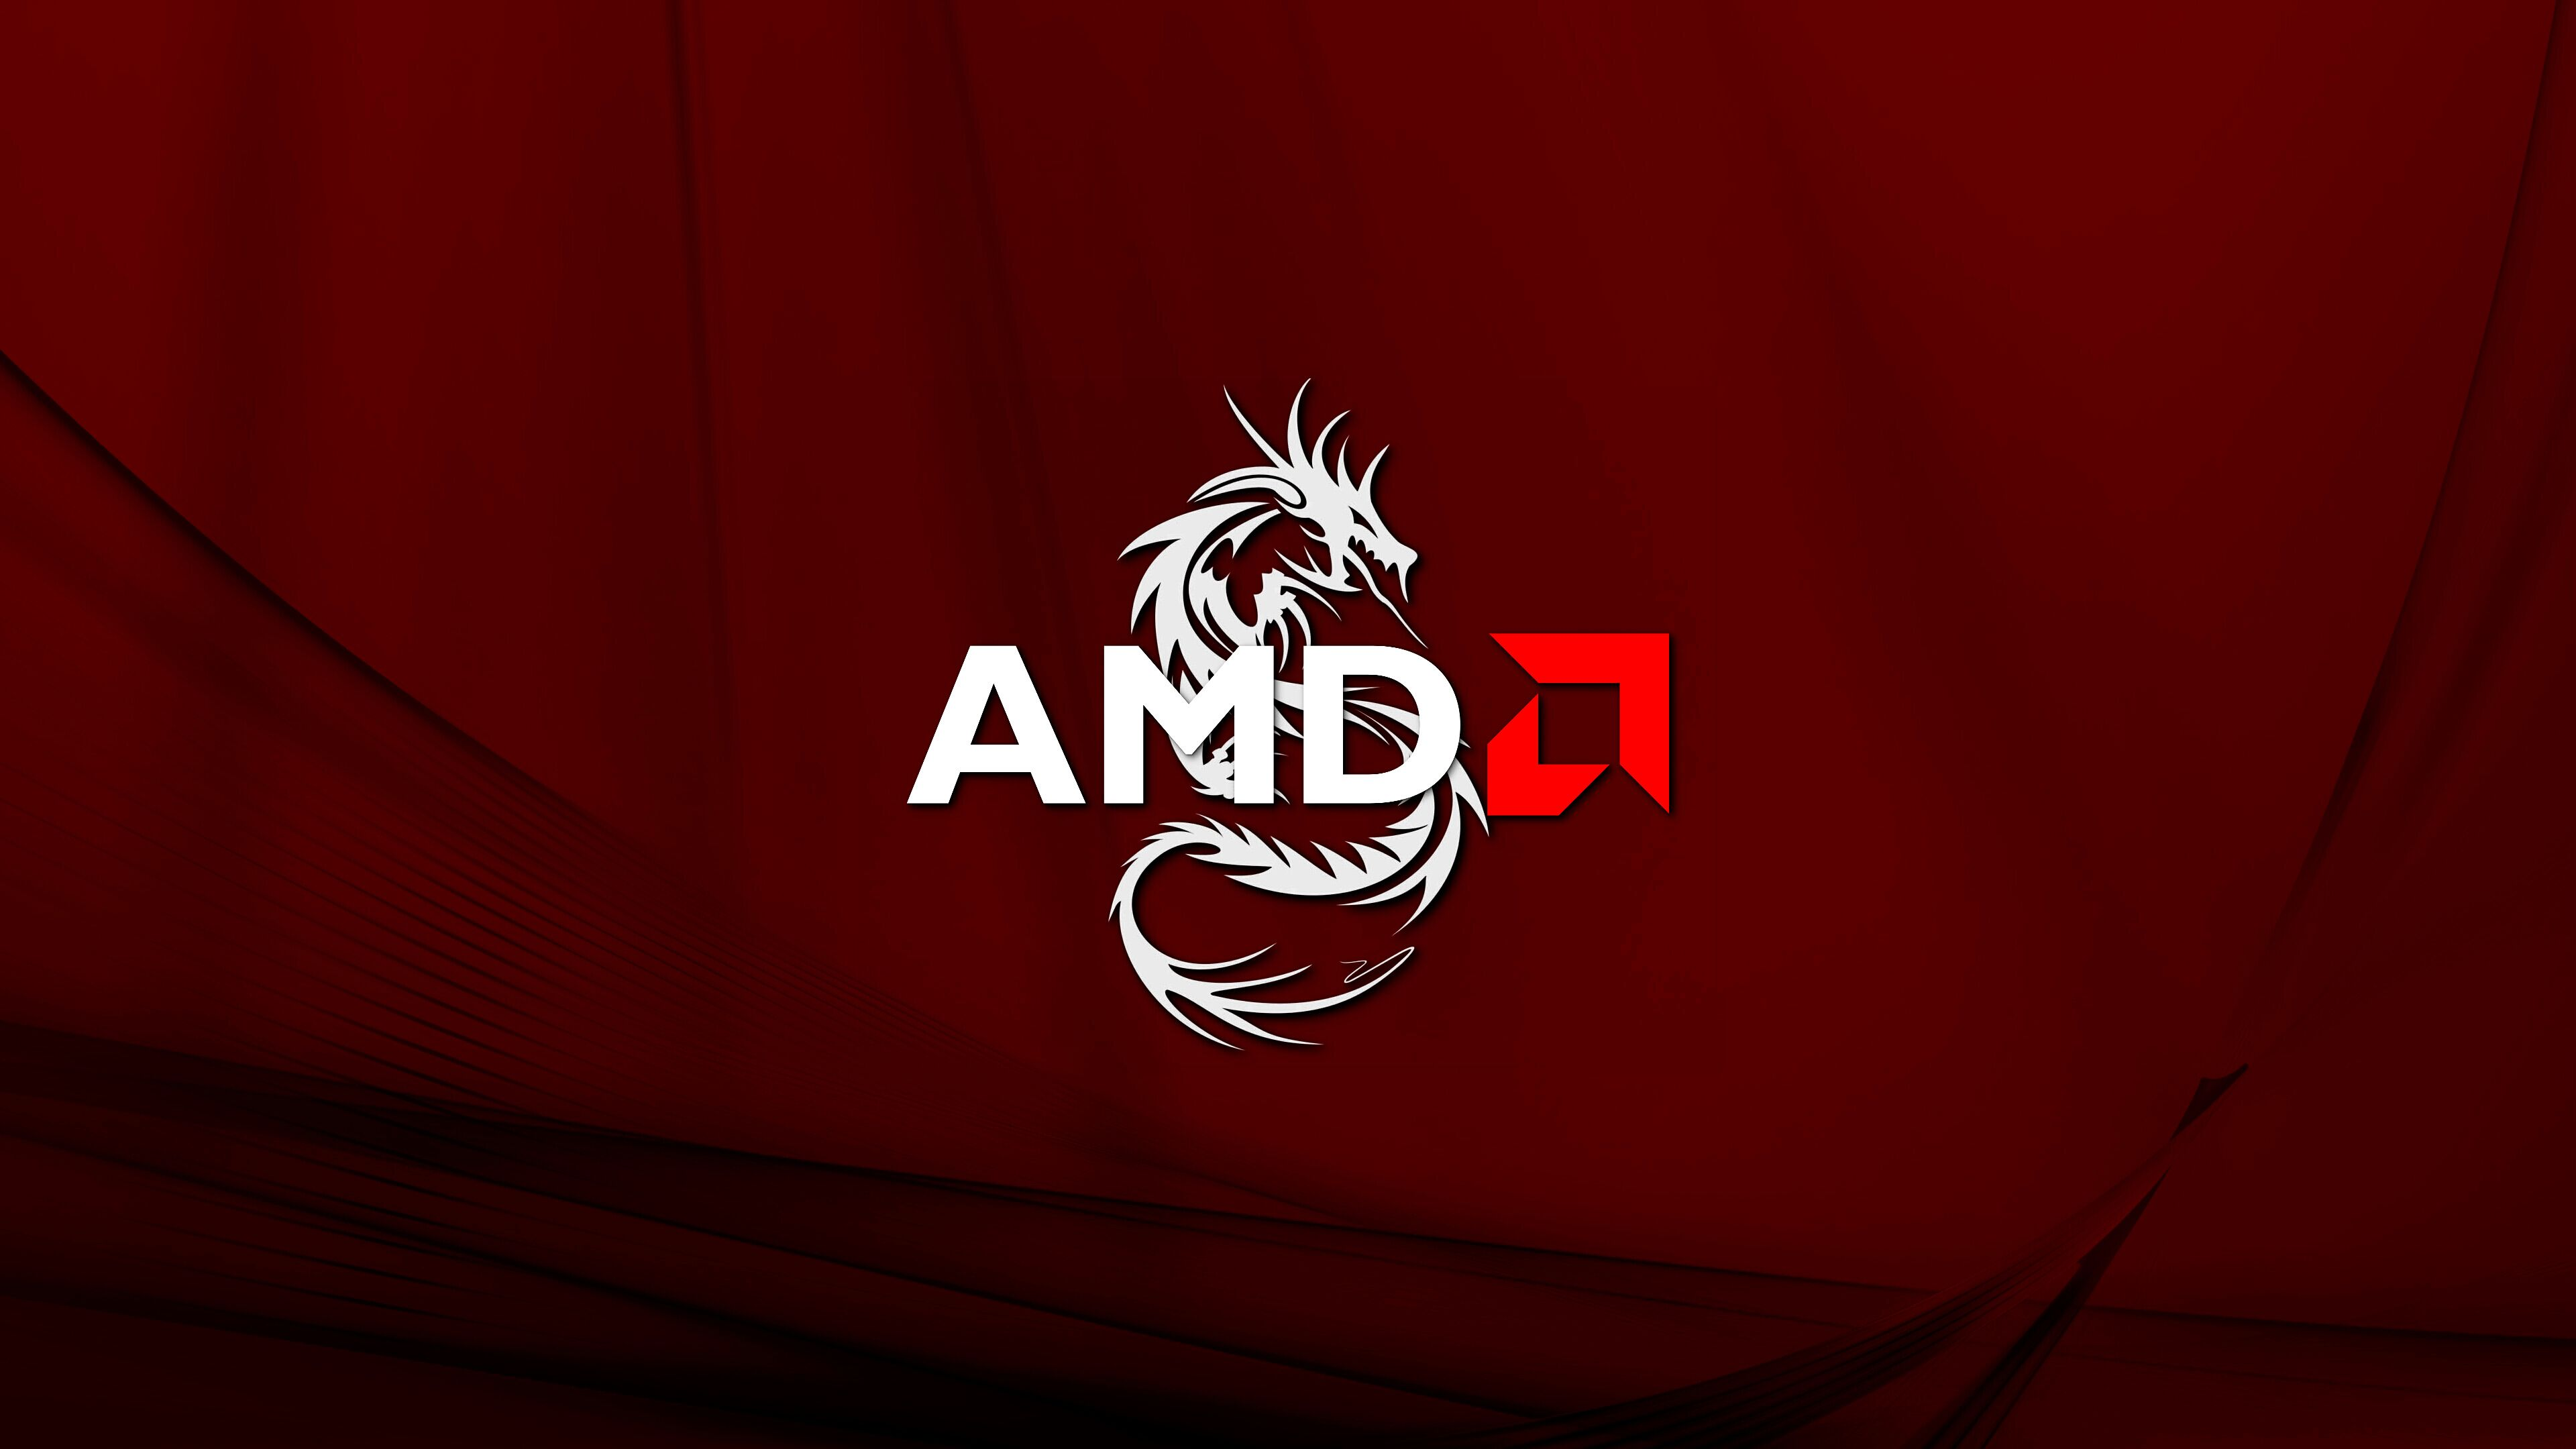 3840x2160 By request, I made a 4K AMD Wallpaper (3840x2160) : Amd